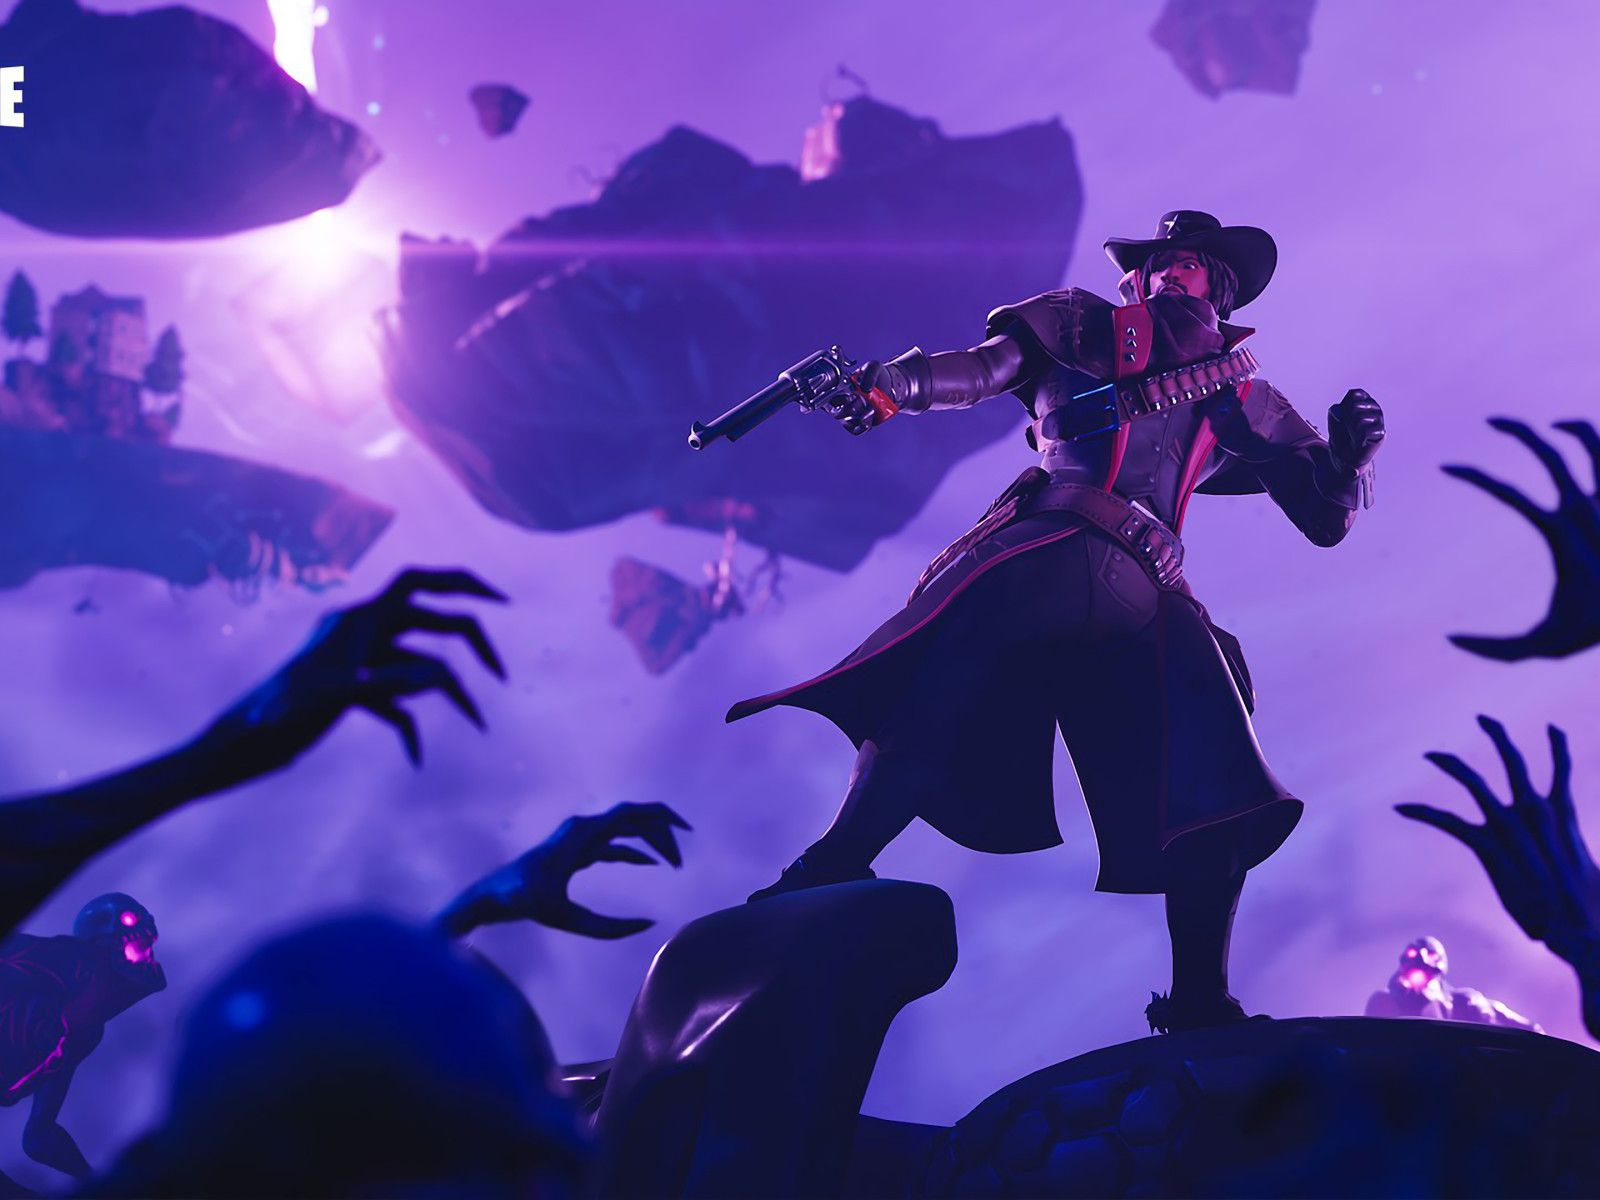 1600x1200 Deadfire Fortnite Battle Royale 1600x1200 Resolution HD